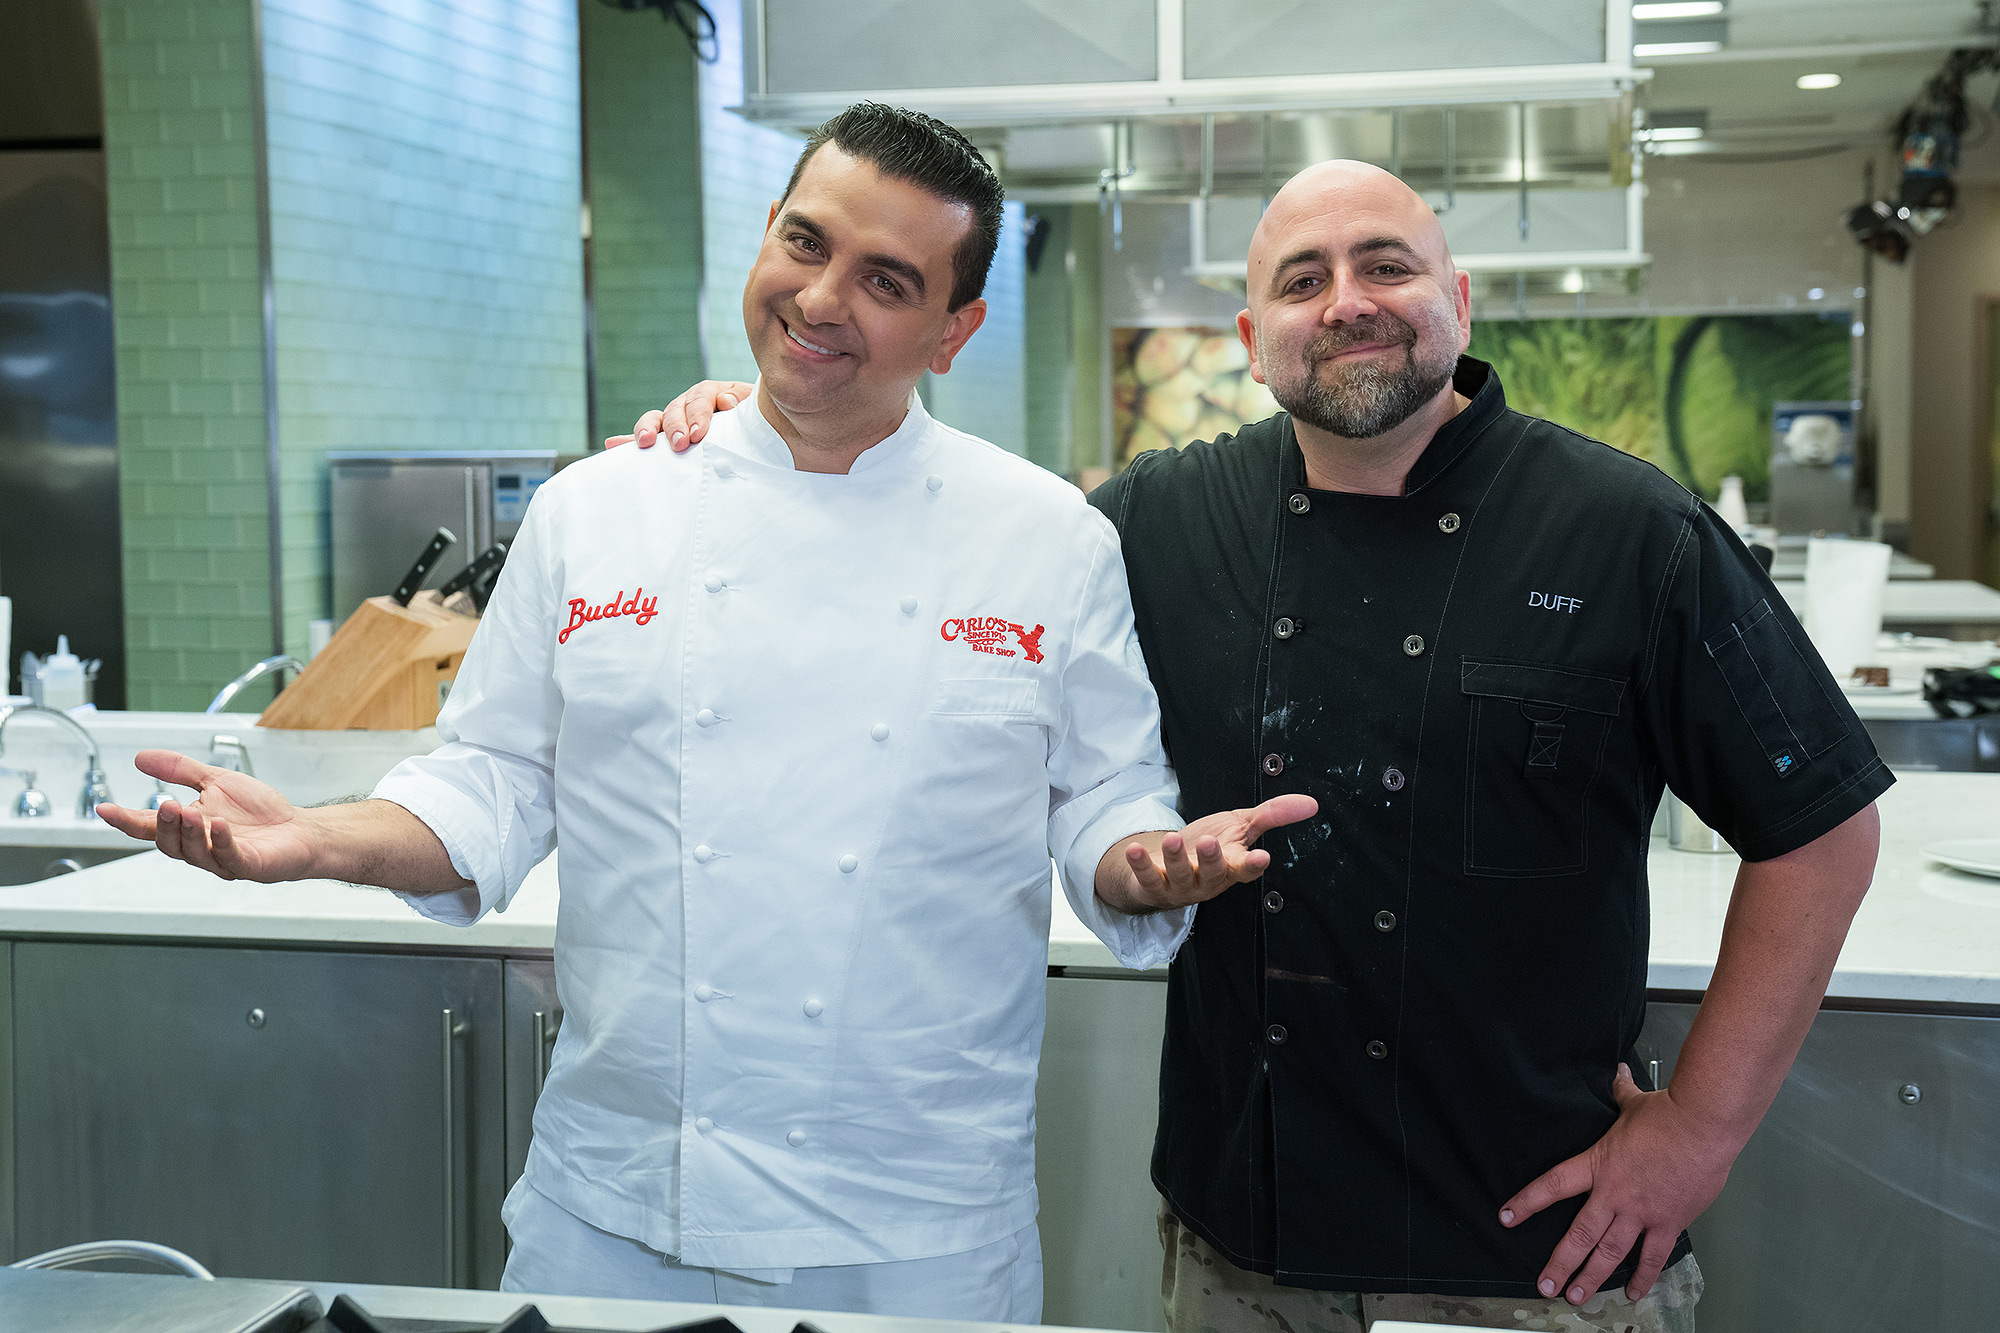 Buddy Valastro and Duff Goldman at the Food Network Studios